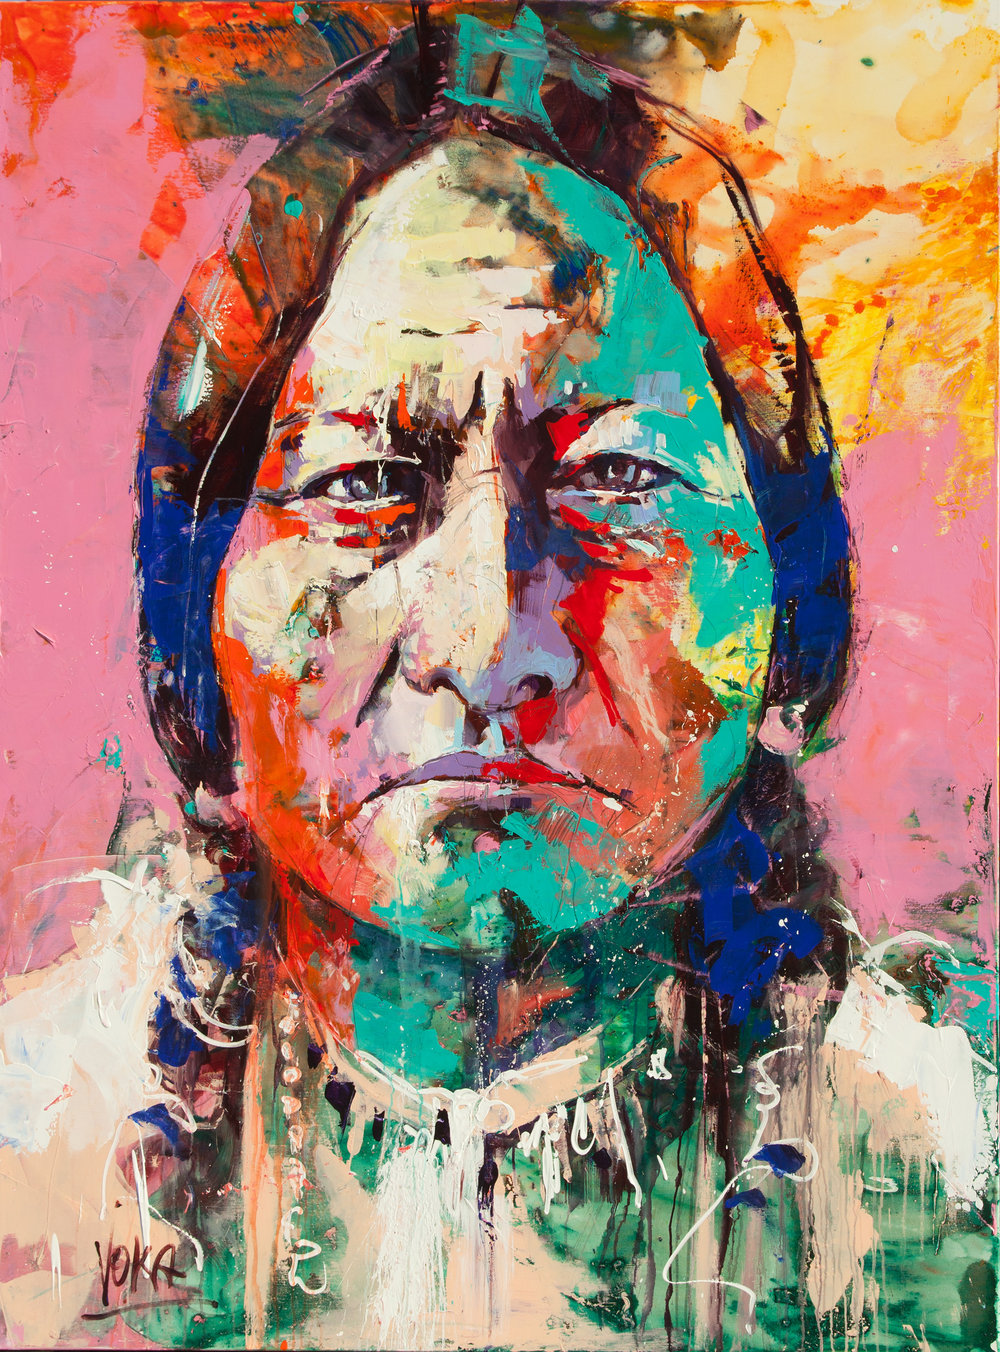 Sitting Bull, 200x150 cm/78,7x59,1 inch, Acrylic on Canvas